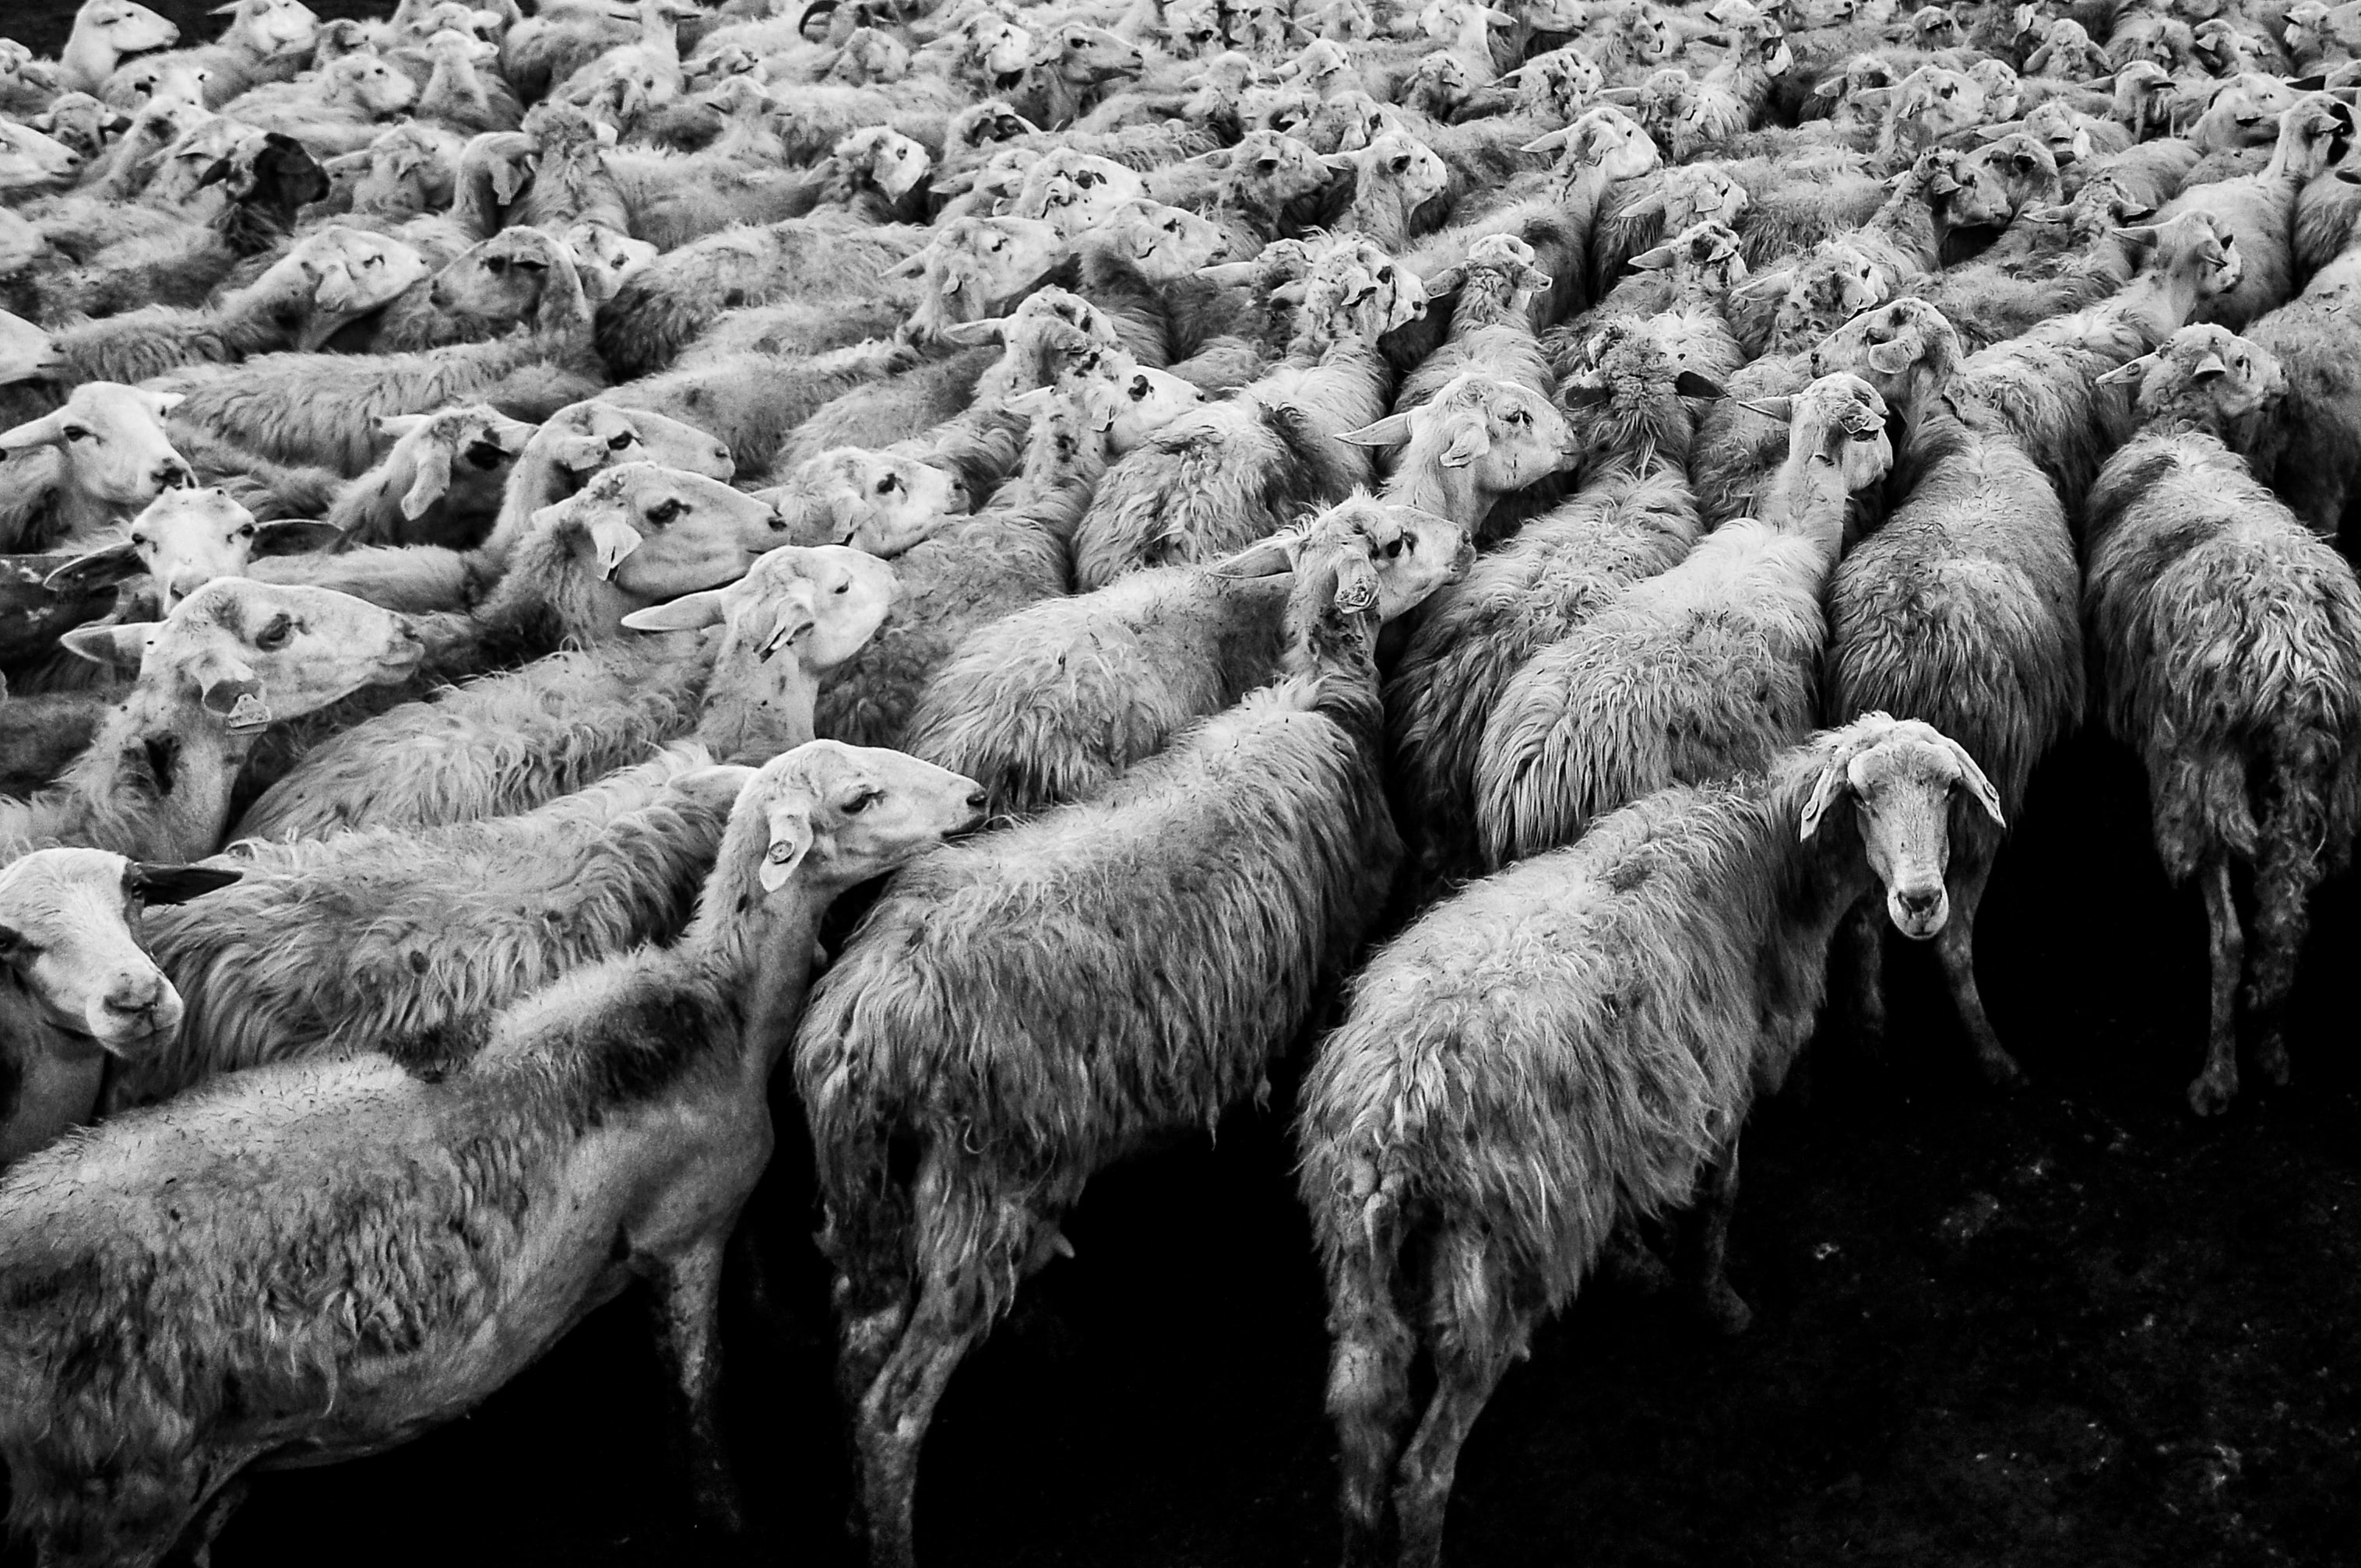 Big flock of woolly sheep headed towards one direction together